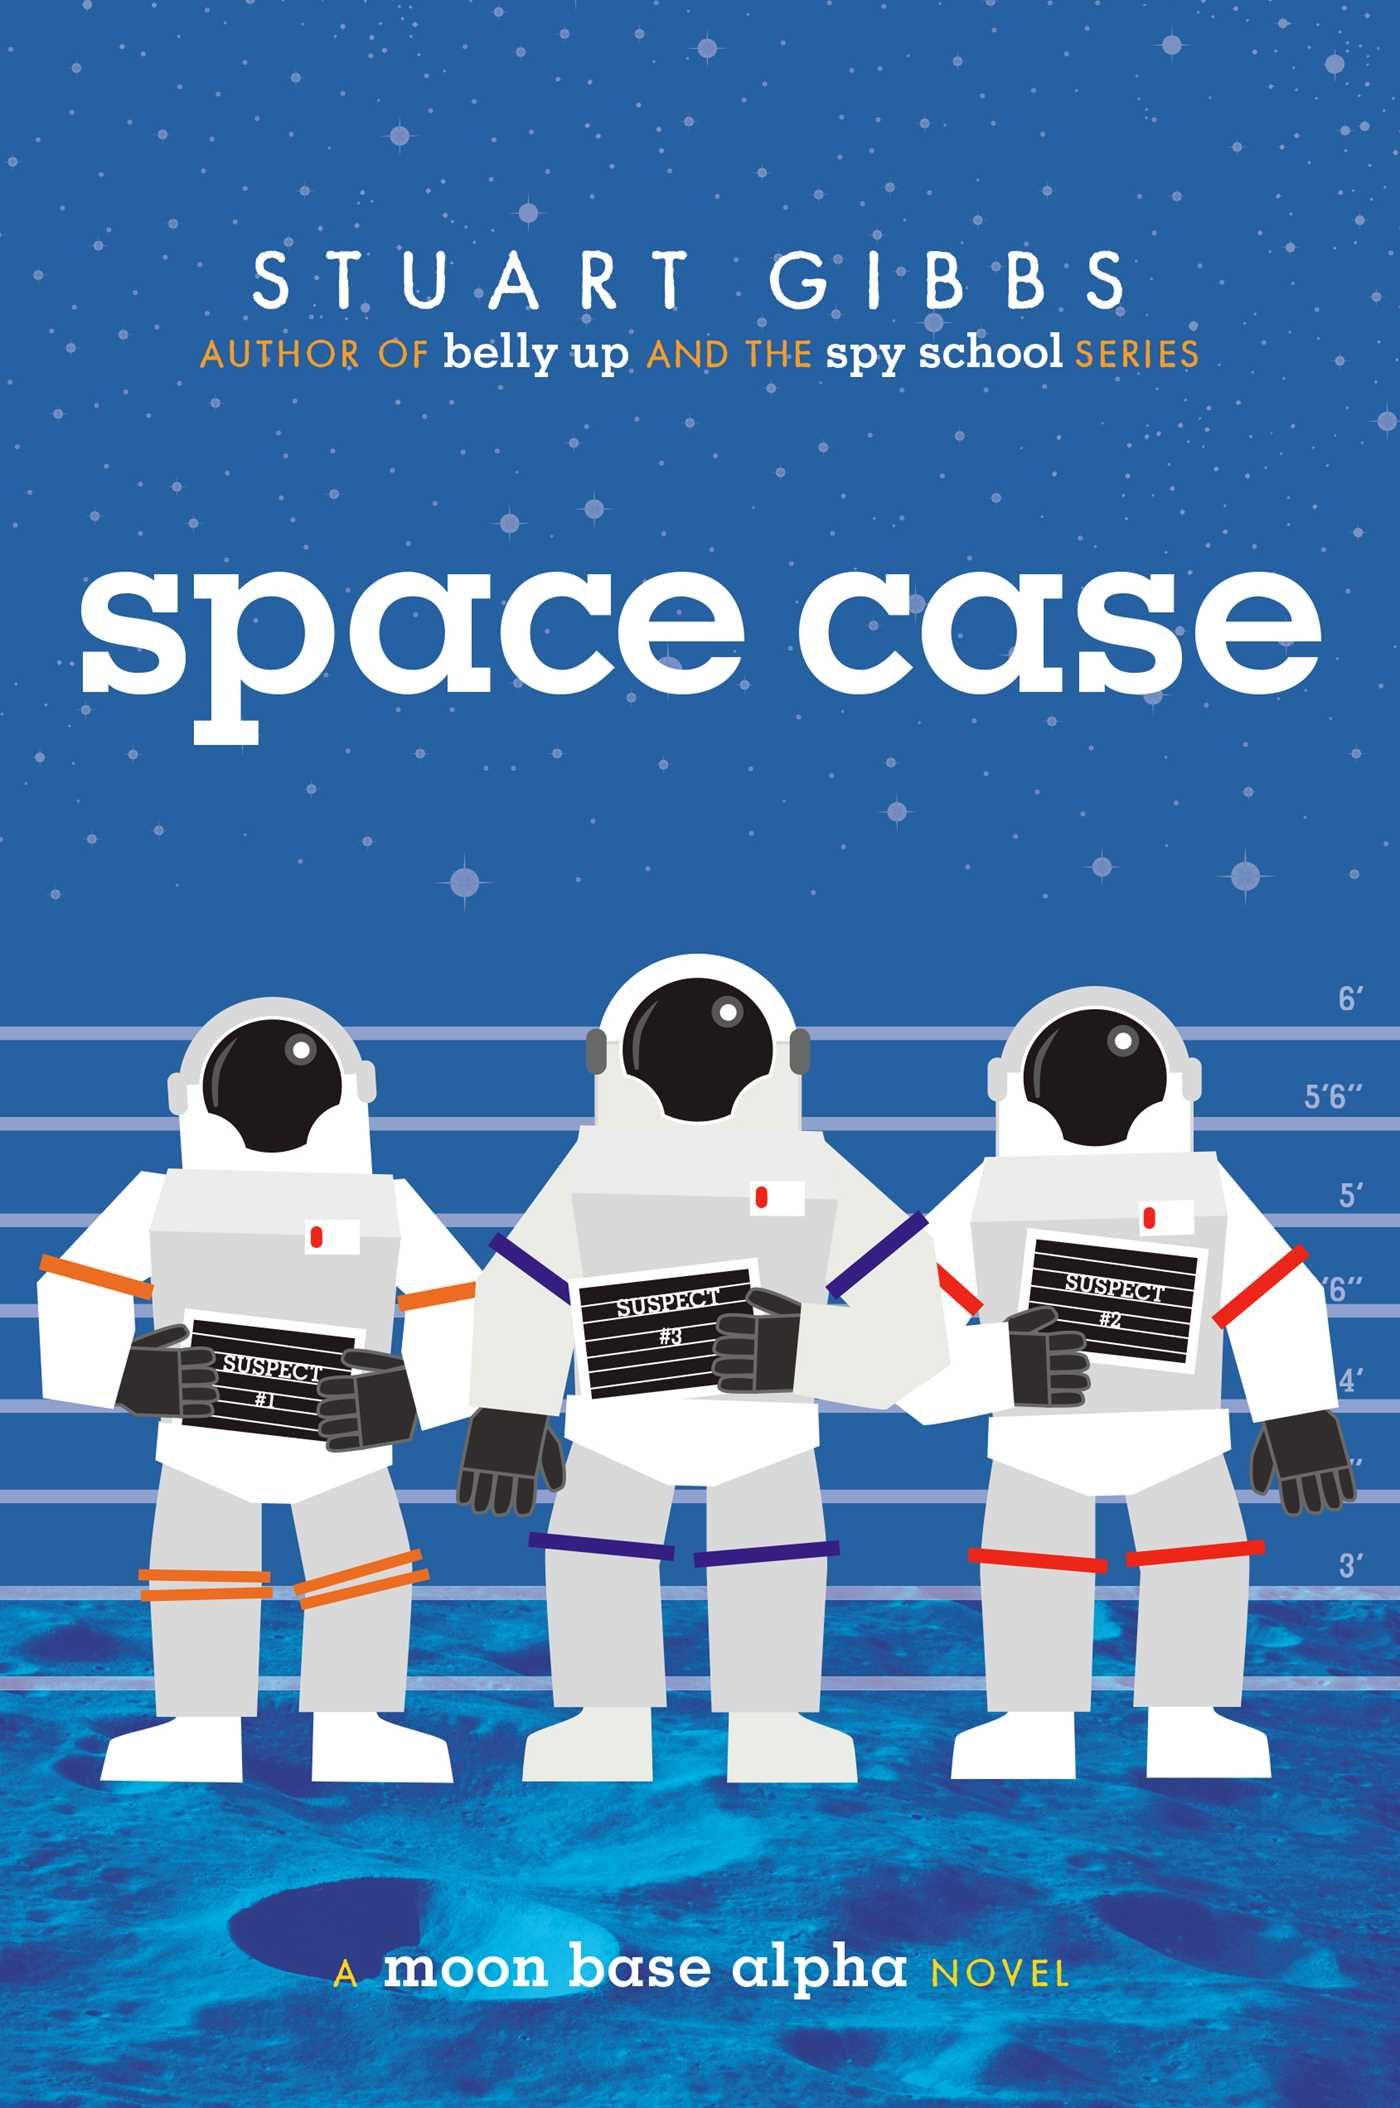 Space case 9781442494862 hr